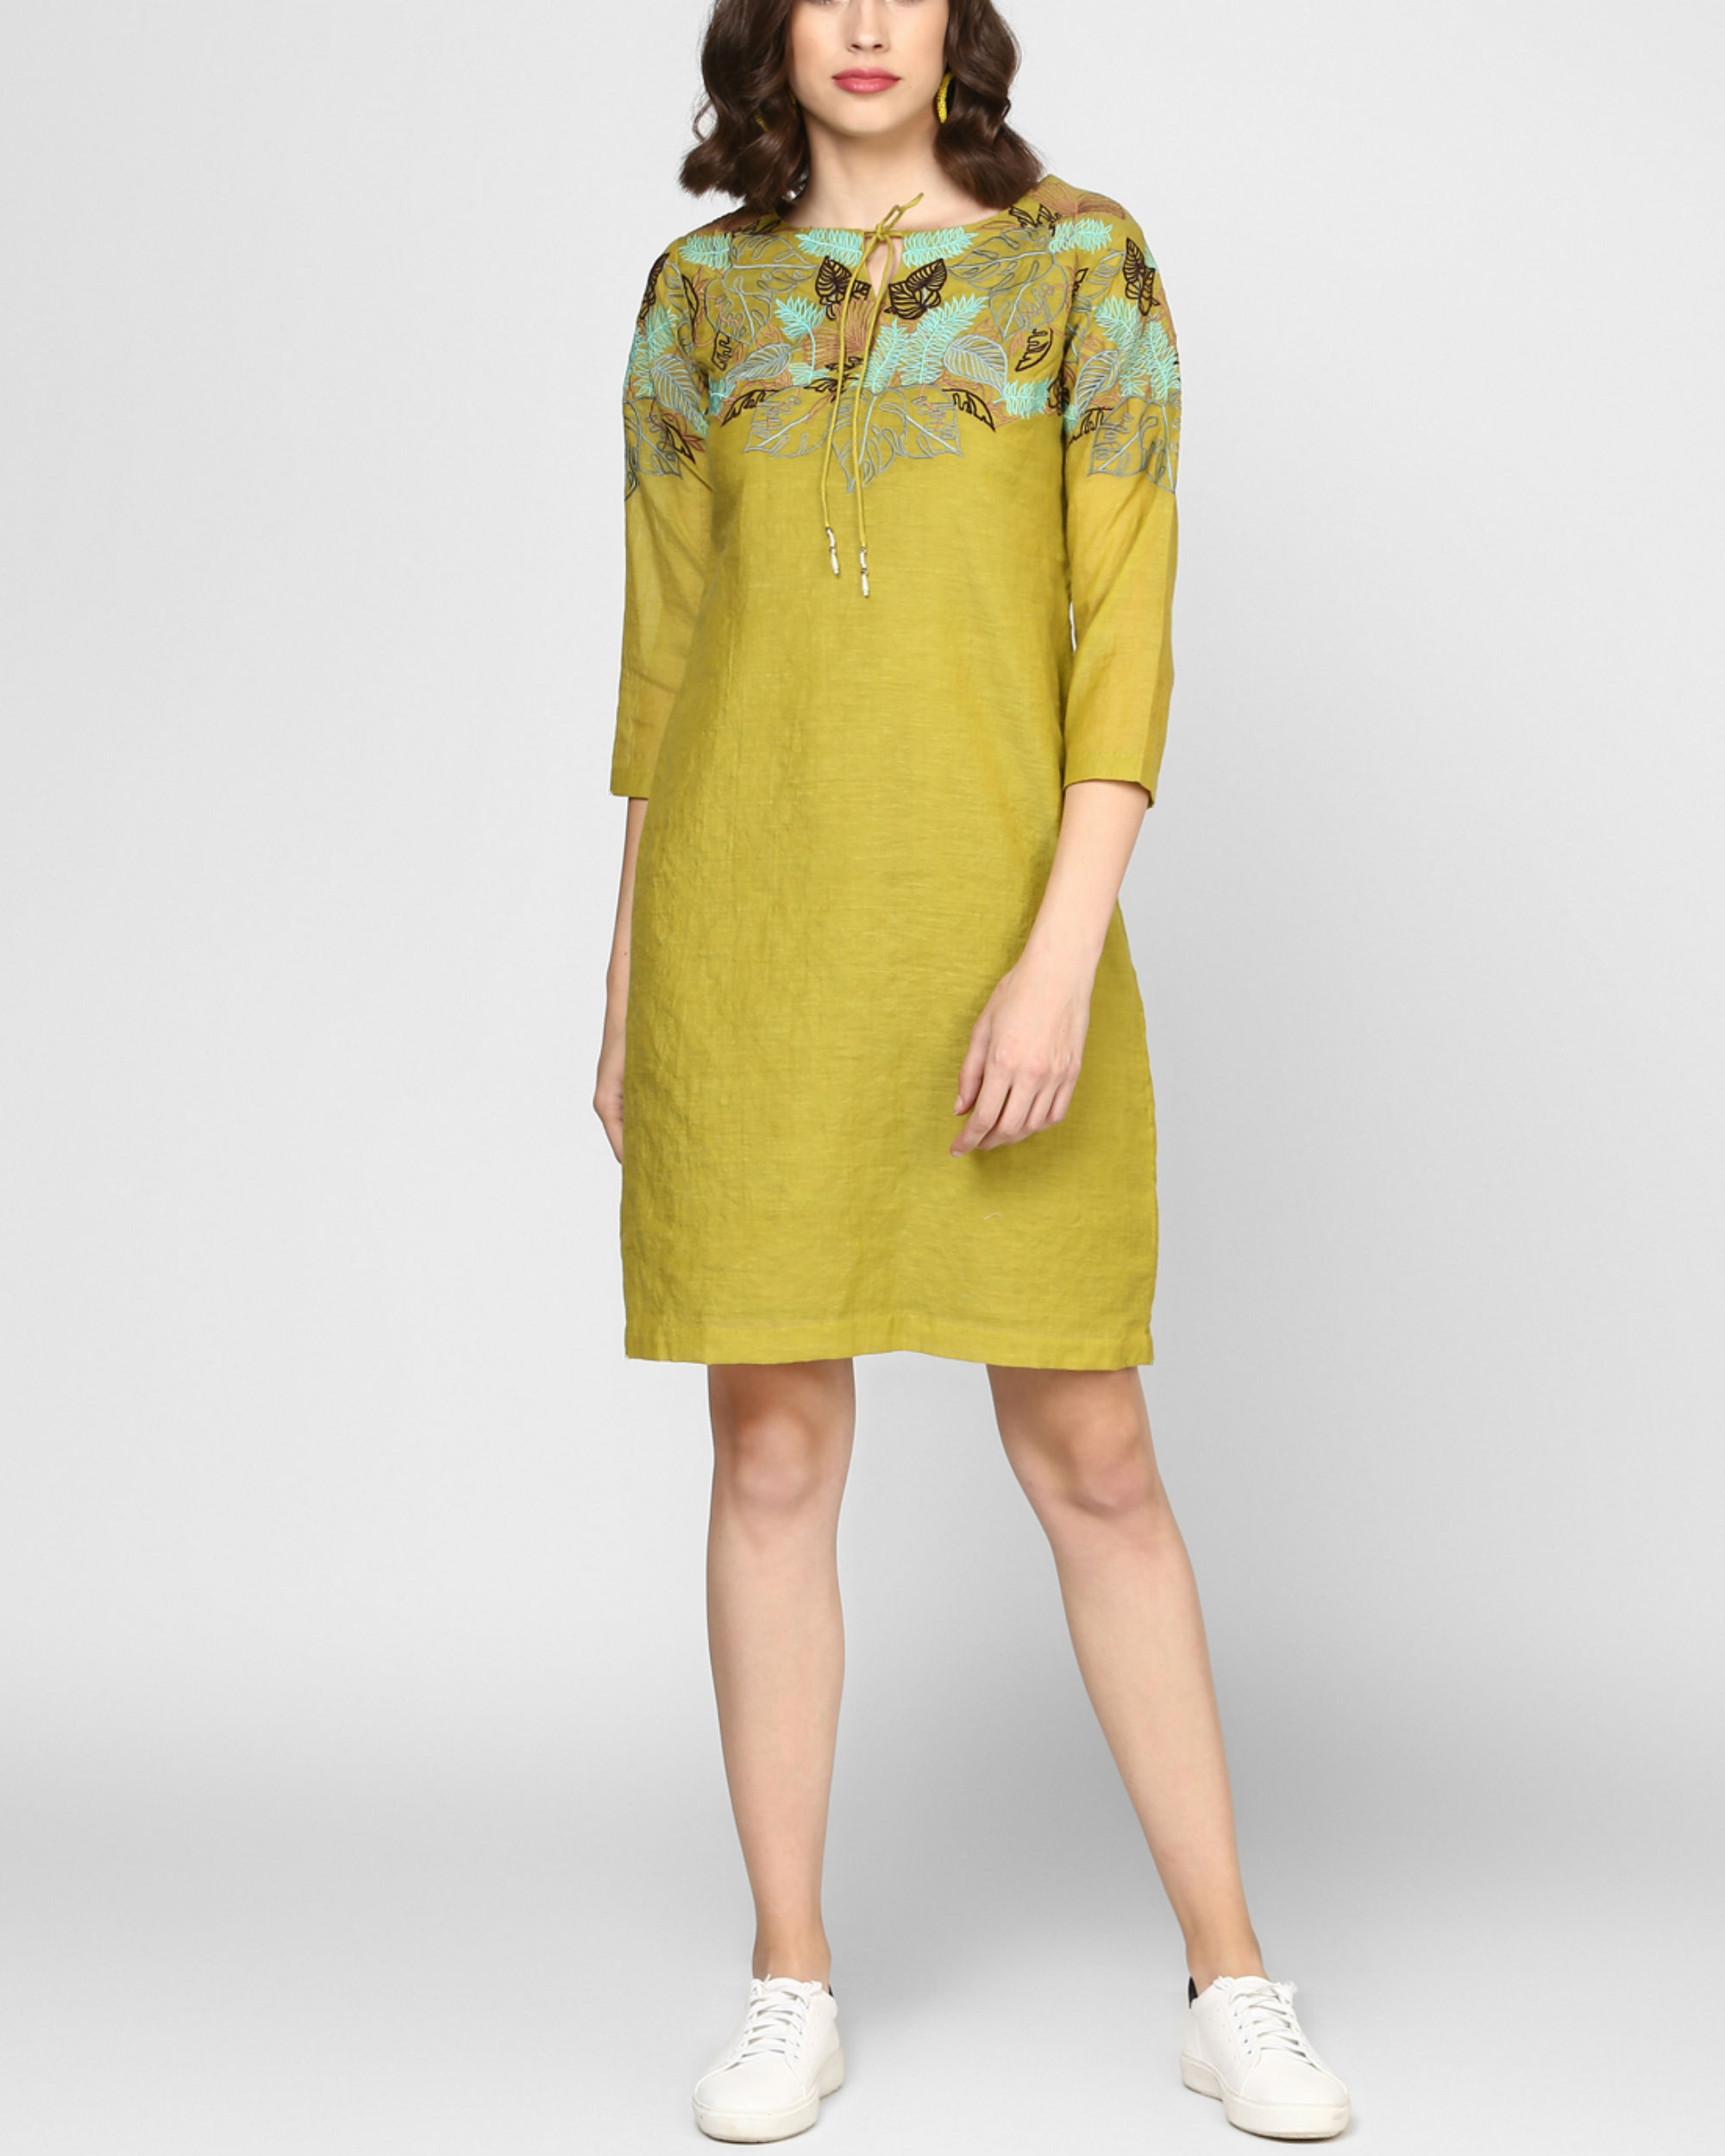 Olive green embroidered shift dress